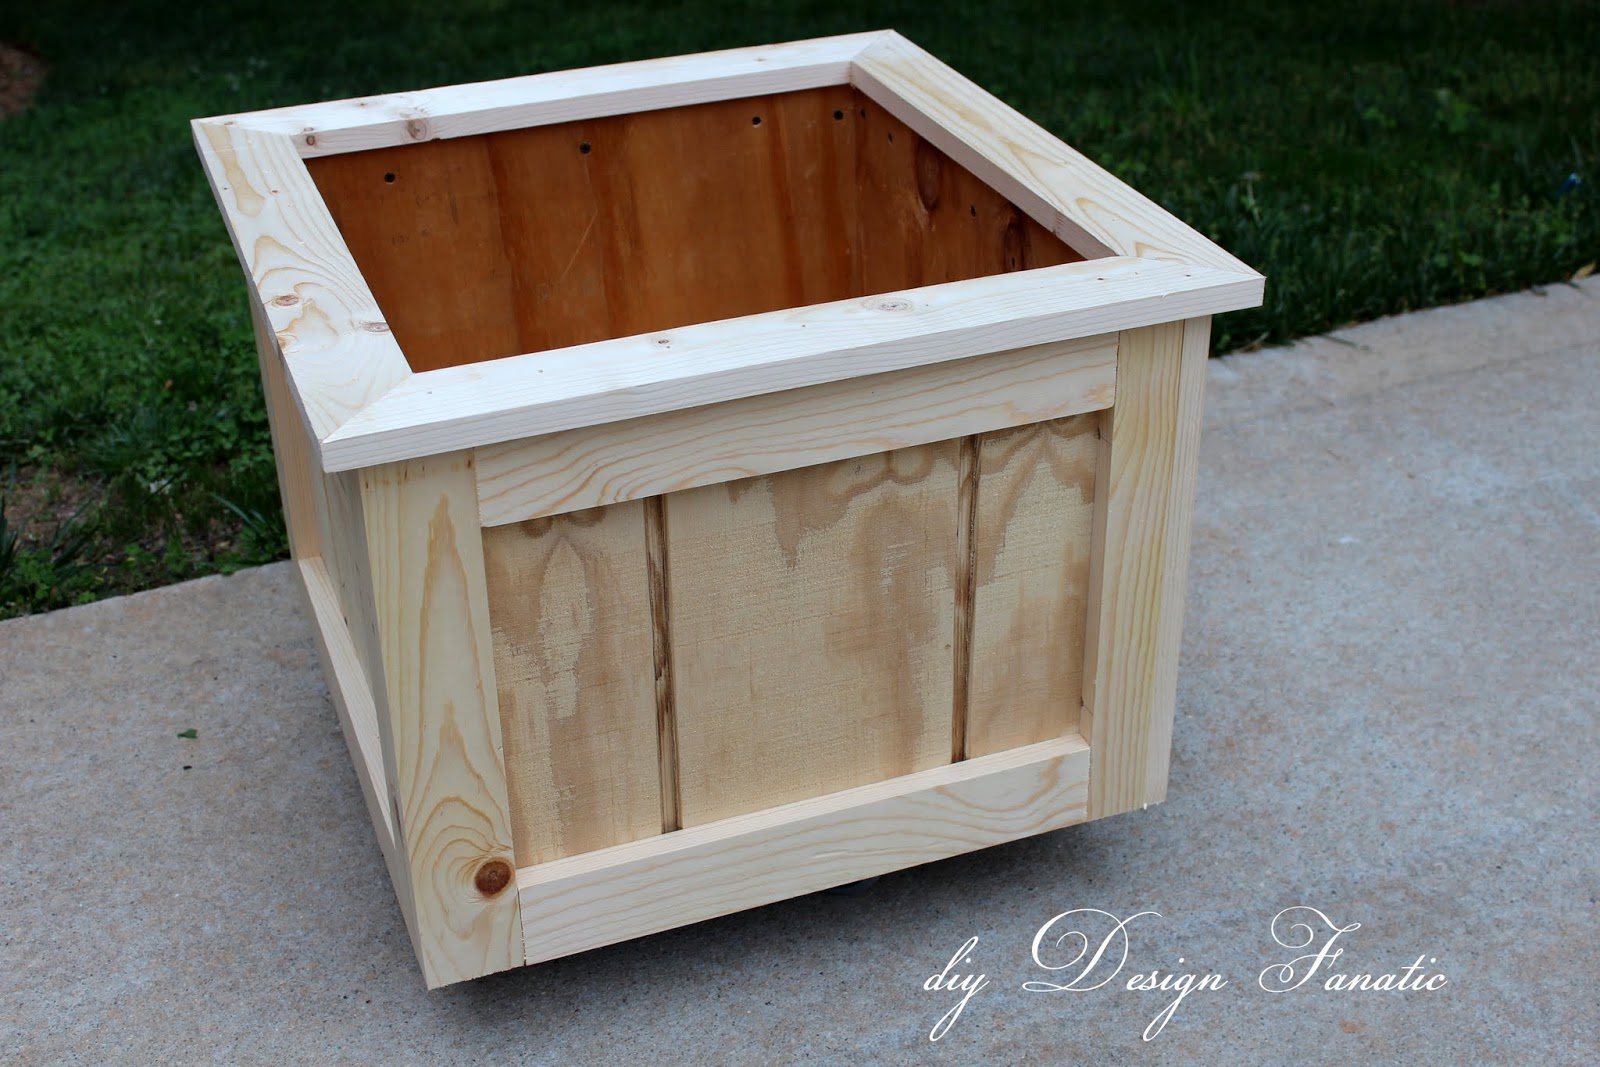 Wooden planter boxes you can look tall plant pots you can look big flower pots you can look plant plant you can look outdoor garden pots